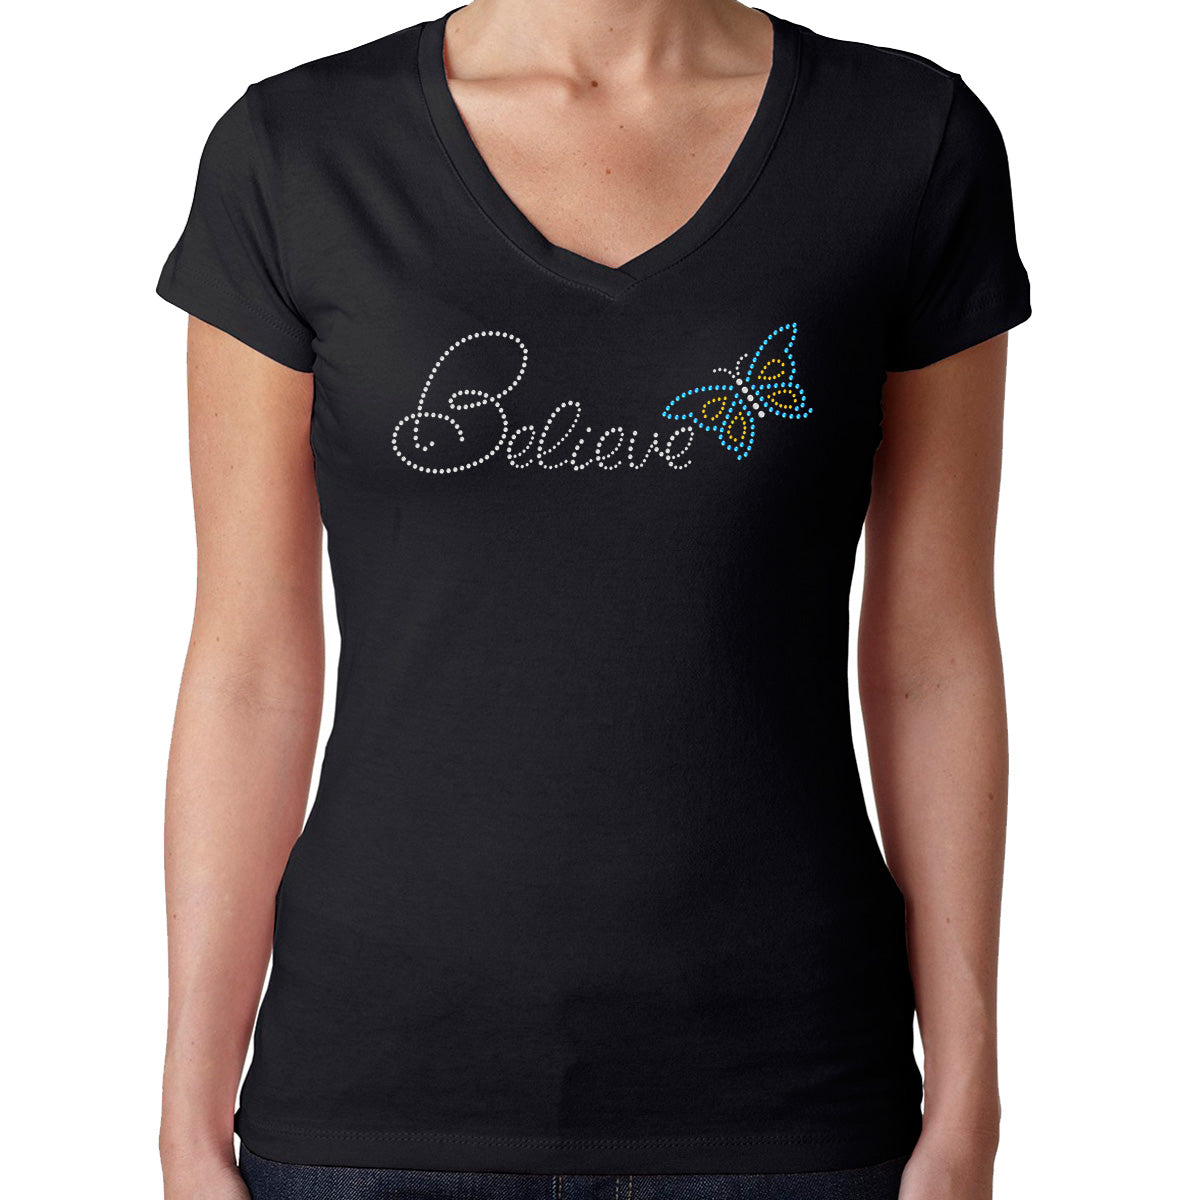 Womens T-Shirt Rhinestone Bling Black Fitted Tee Believe Butterfly Blue Yellow